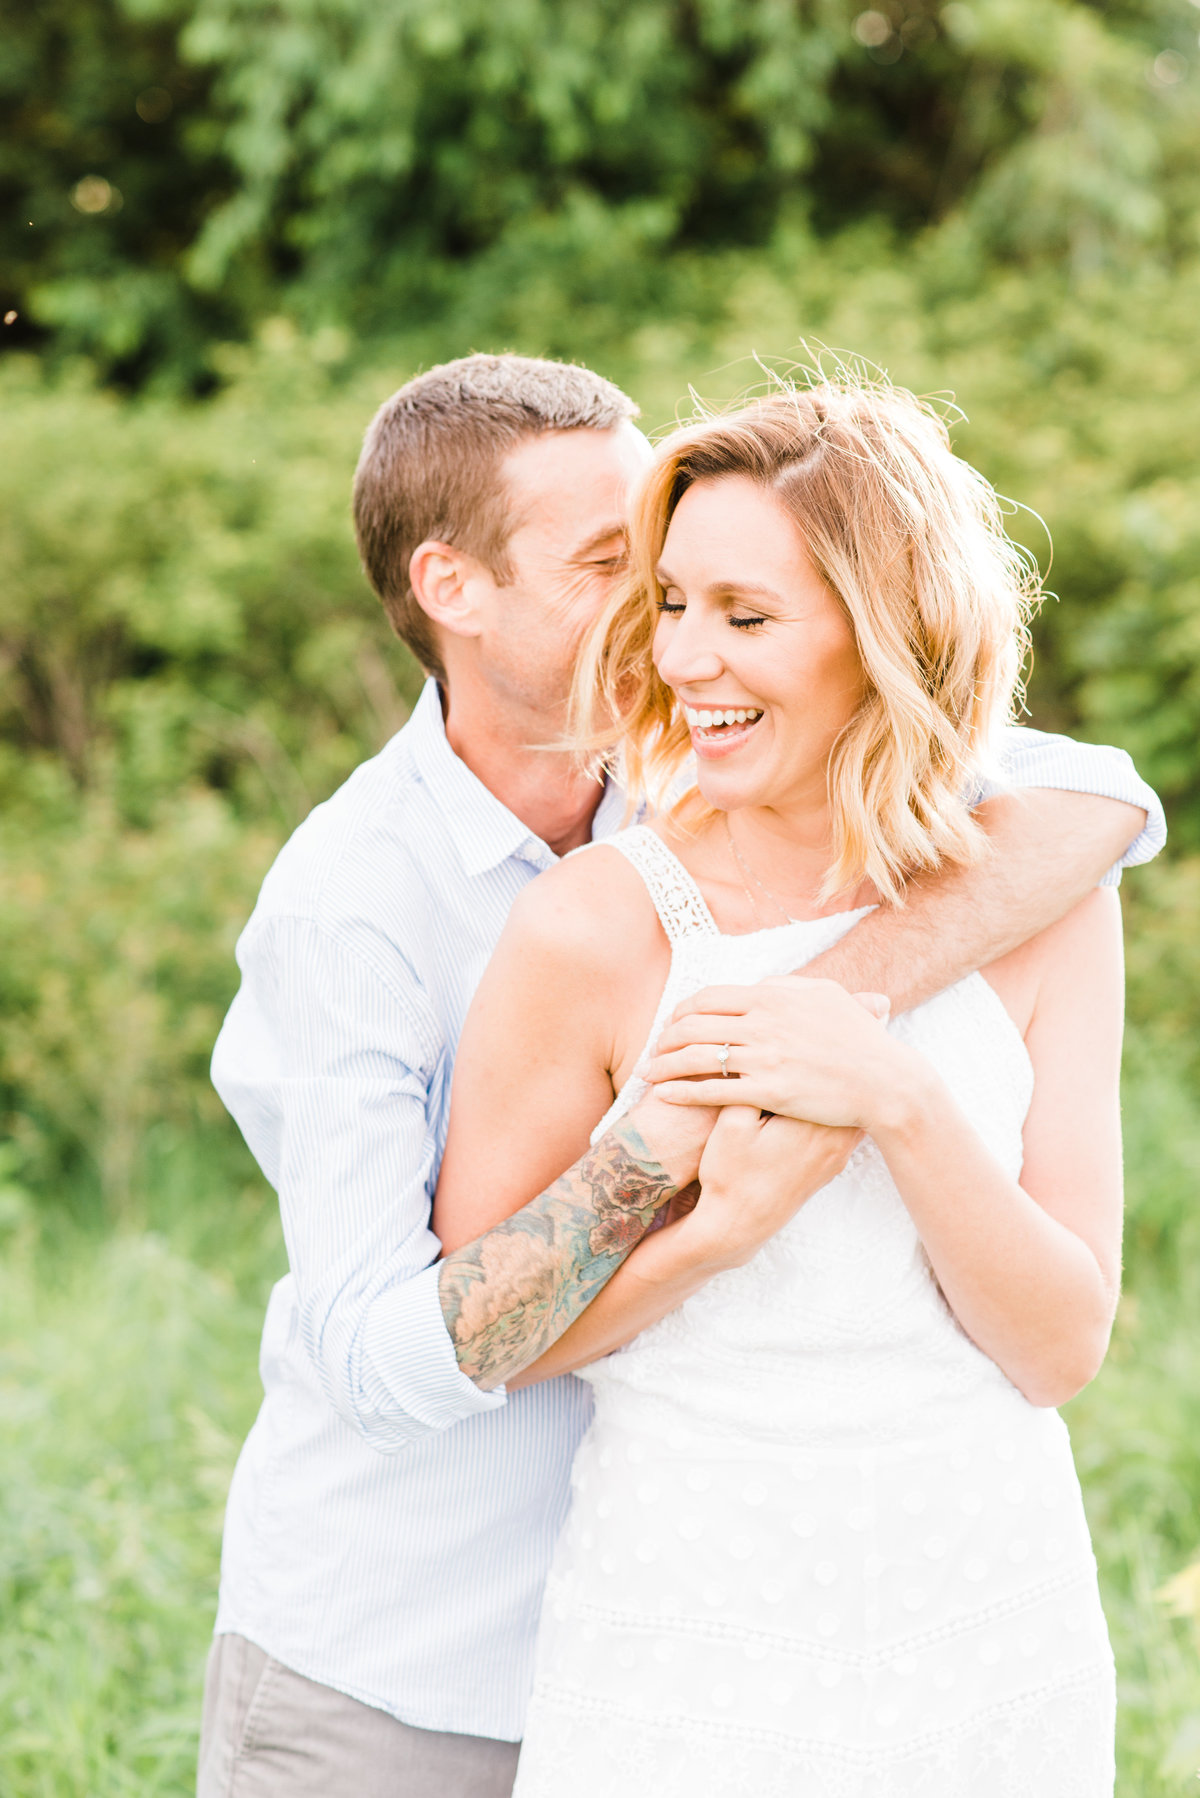 outdoor summer engagement session with iowa wedding photographer mississippi pearl photography